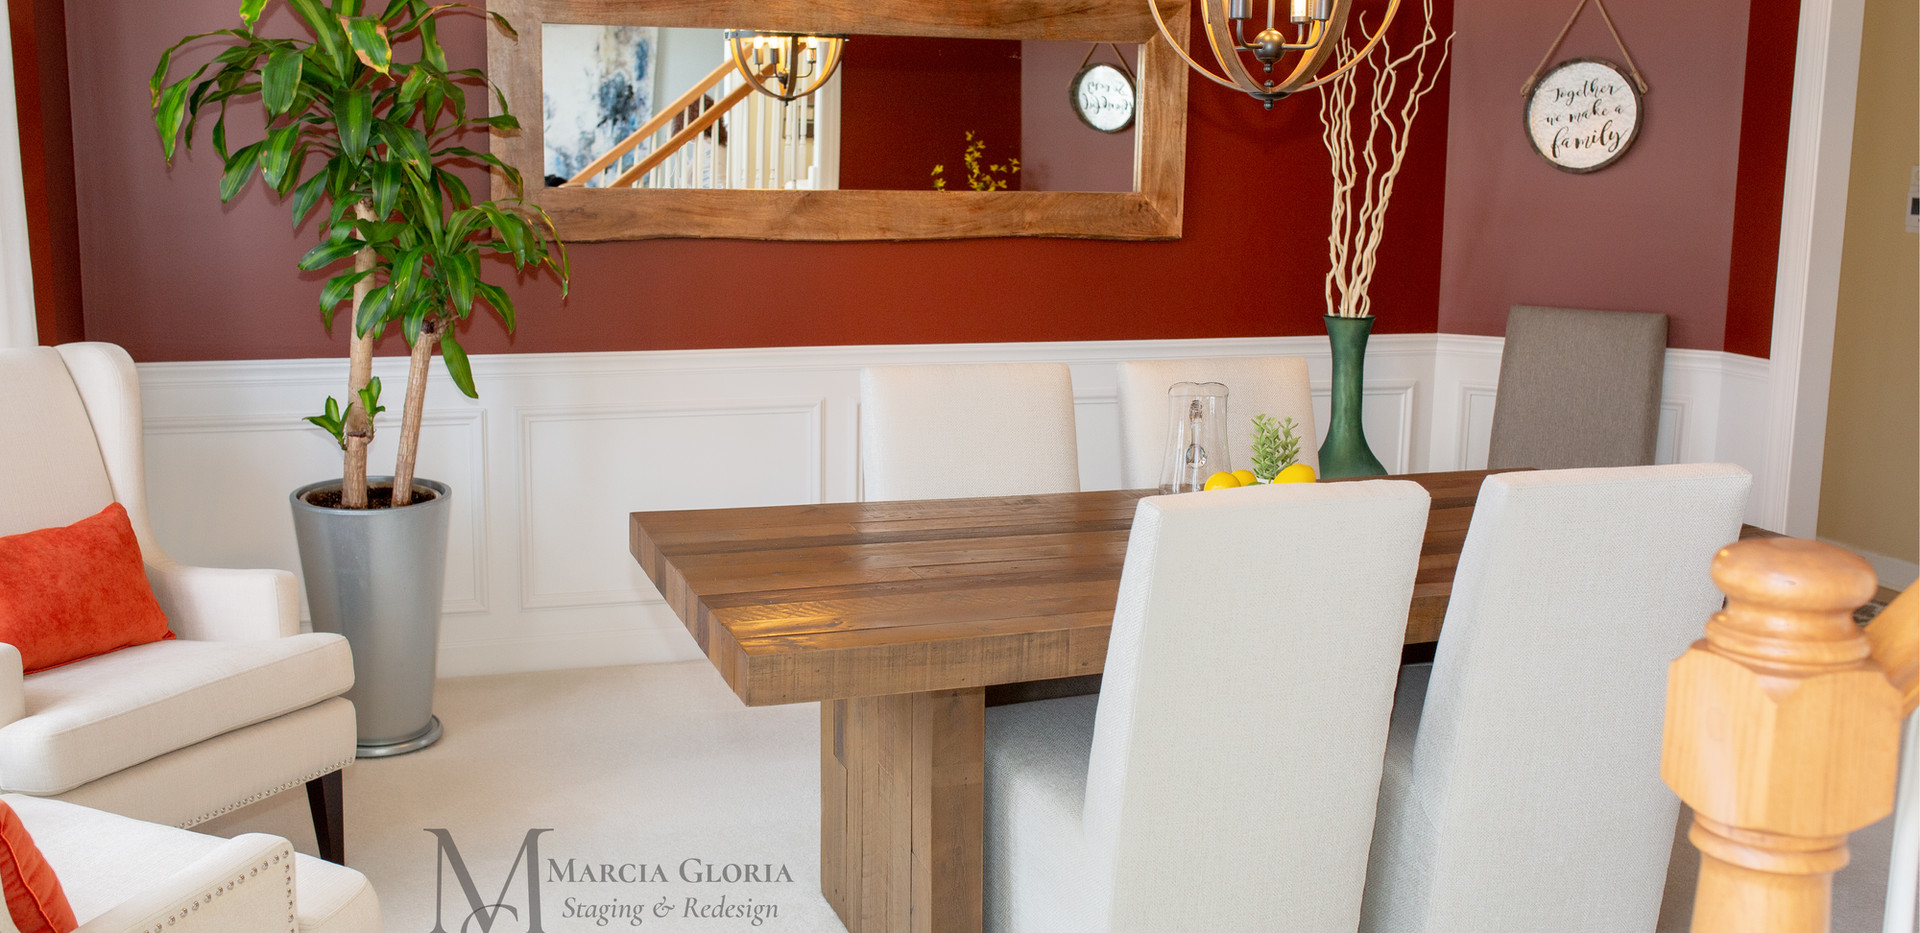 Dining Room Staging - Marcia Gloria Staging & Redesign